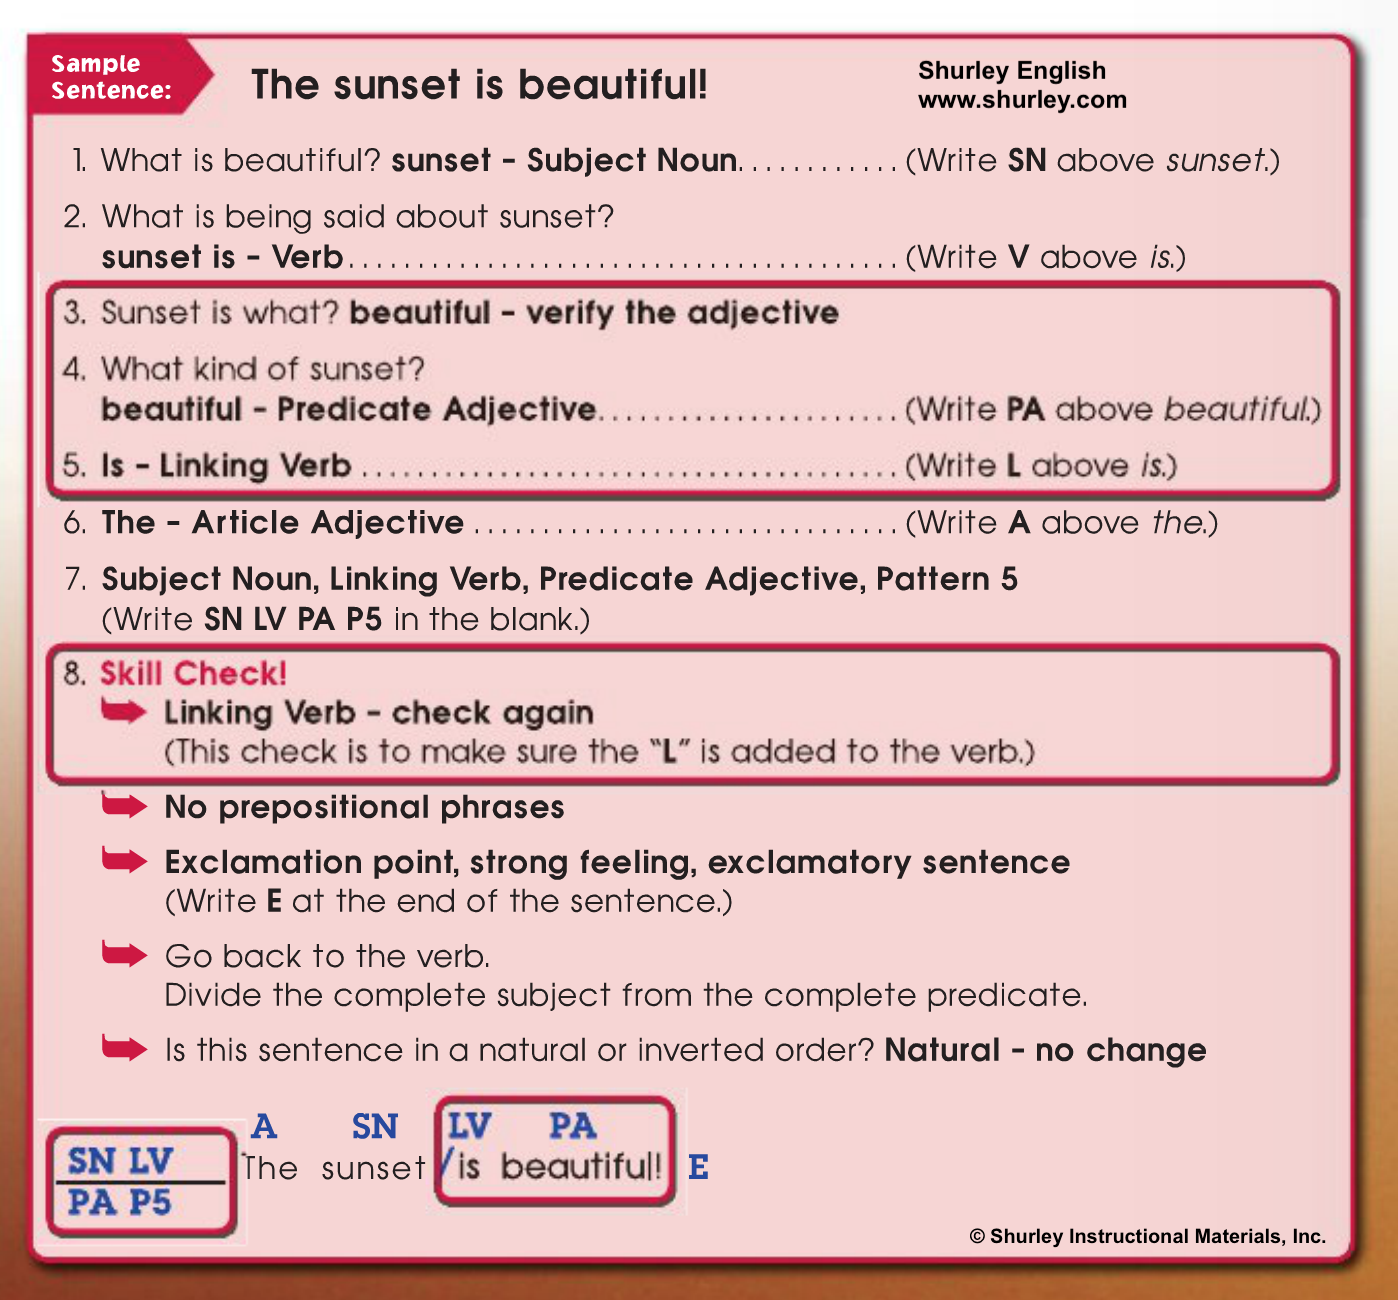 Pattern 5 Sample with Shurley English.png